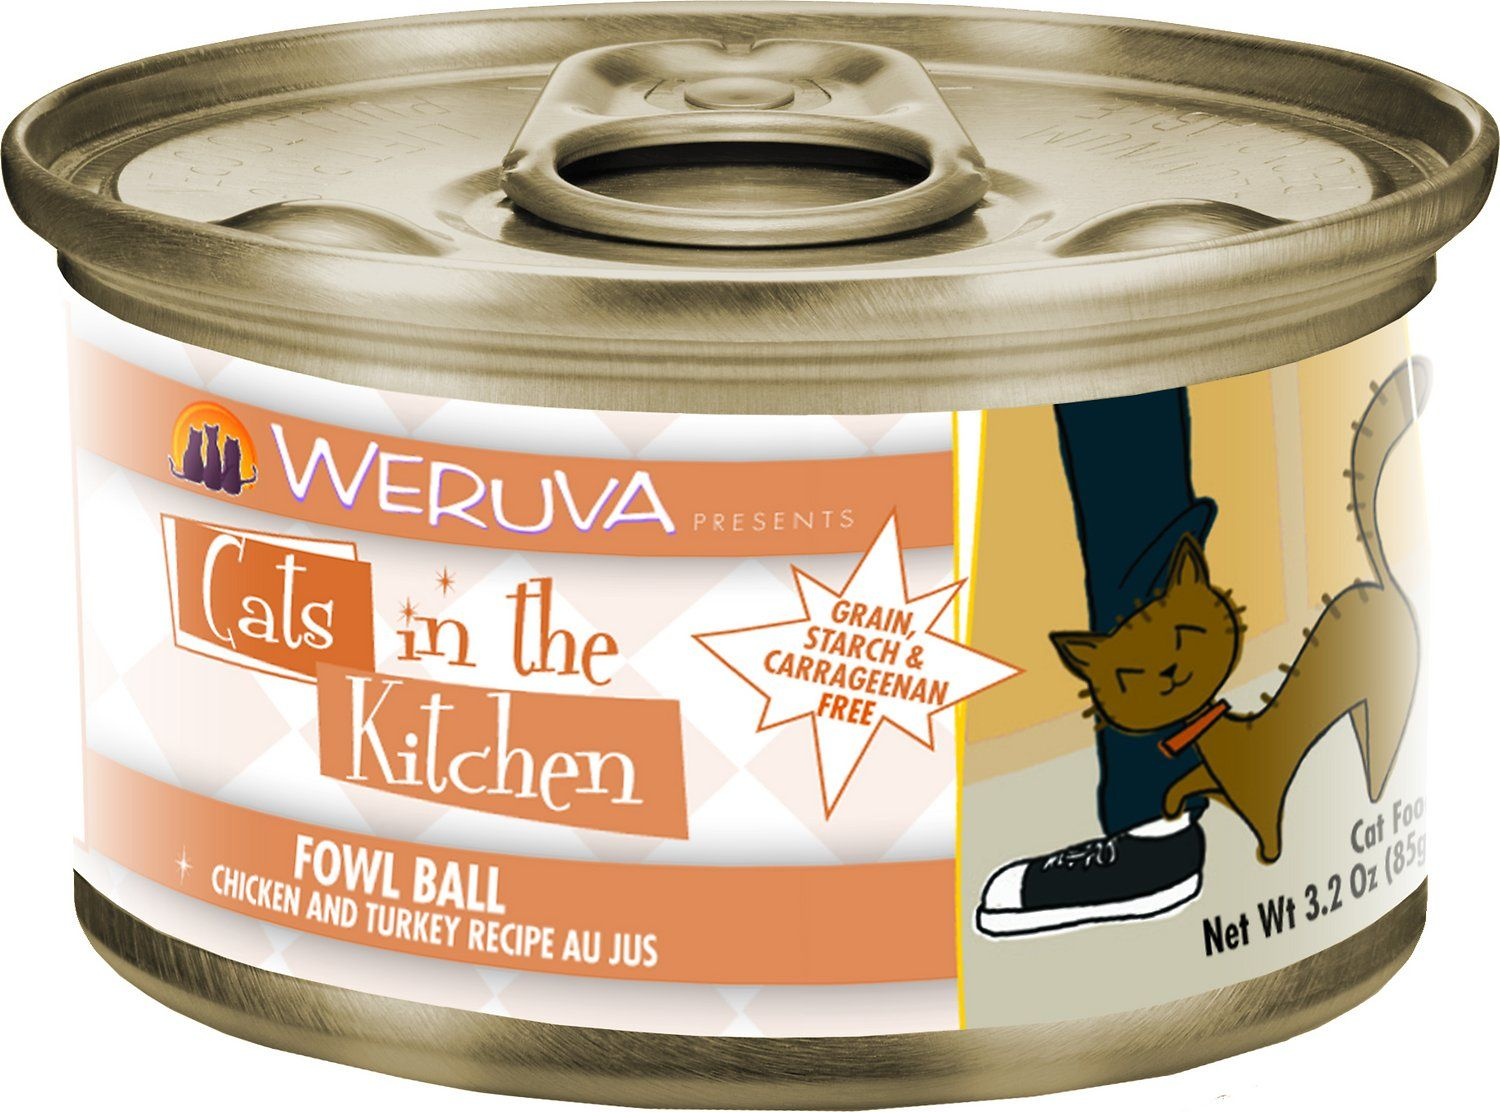 Contains Fish Oil But Not Fish Meat Your Kitty Loves Hanging Out In The Kitchen So Give Him The Home Cooked Canned Cat Food Cat Food Reviews Chicken Pumpkin